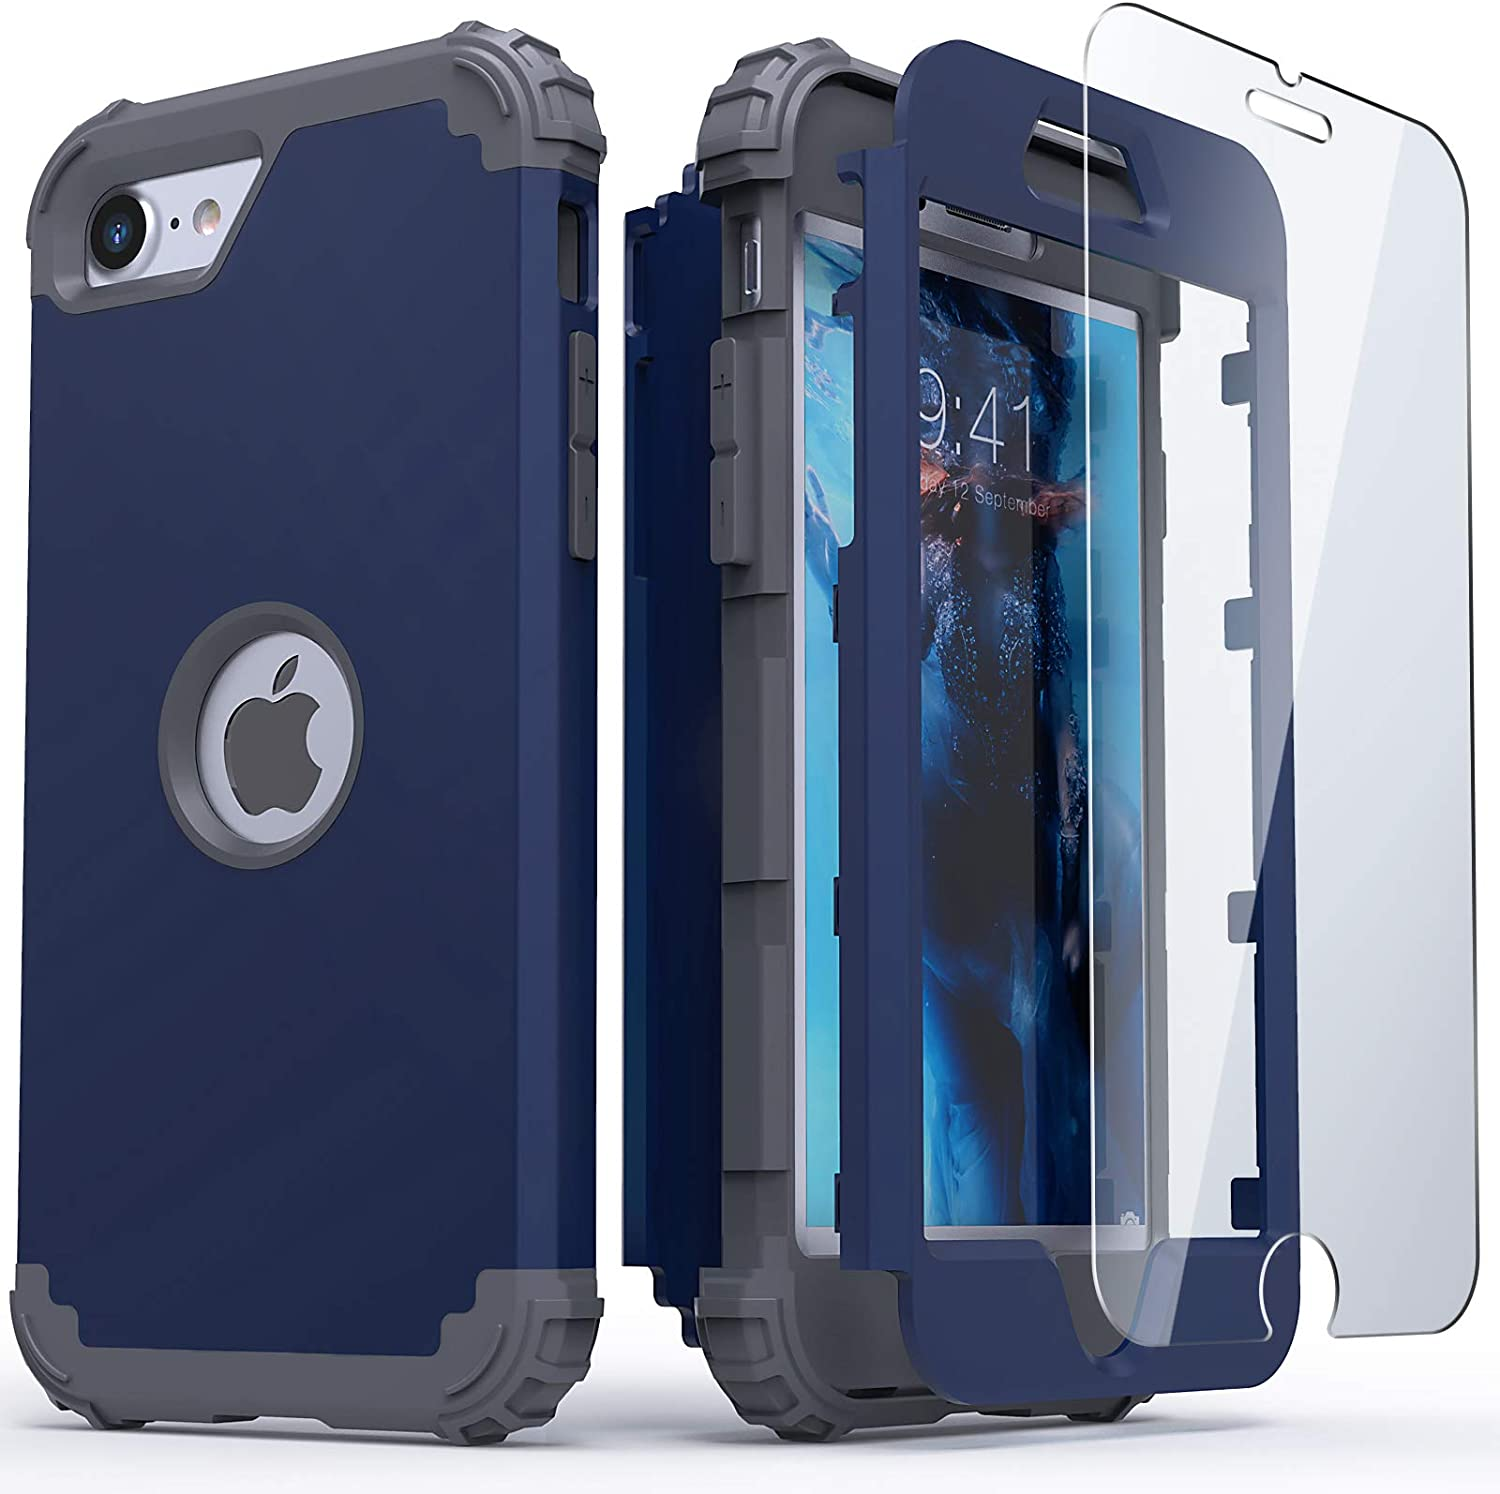 IDweel iPhone SE 2020 Case with Tempered Glass Screen Protector, Hybrid 3 in 1 Shockproof Slim Heavy Duty Hard PC Cover Soft Silicone Rugged Bumper Full Body Case for iPhone SE 2nd Generation, Blue